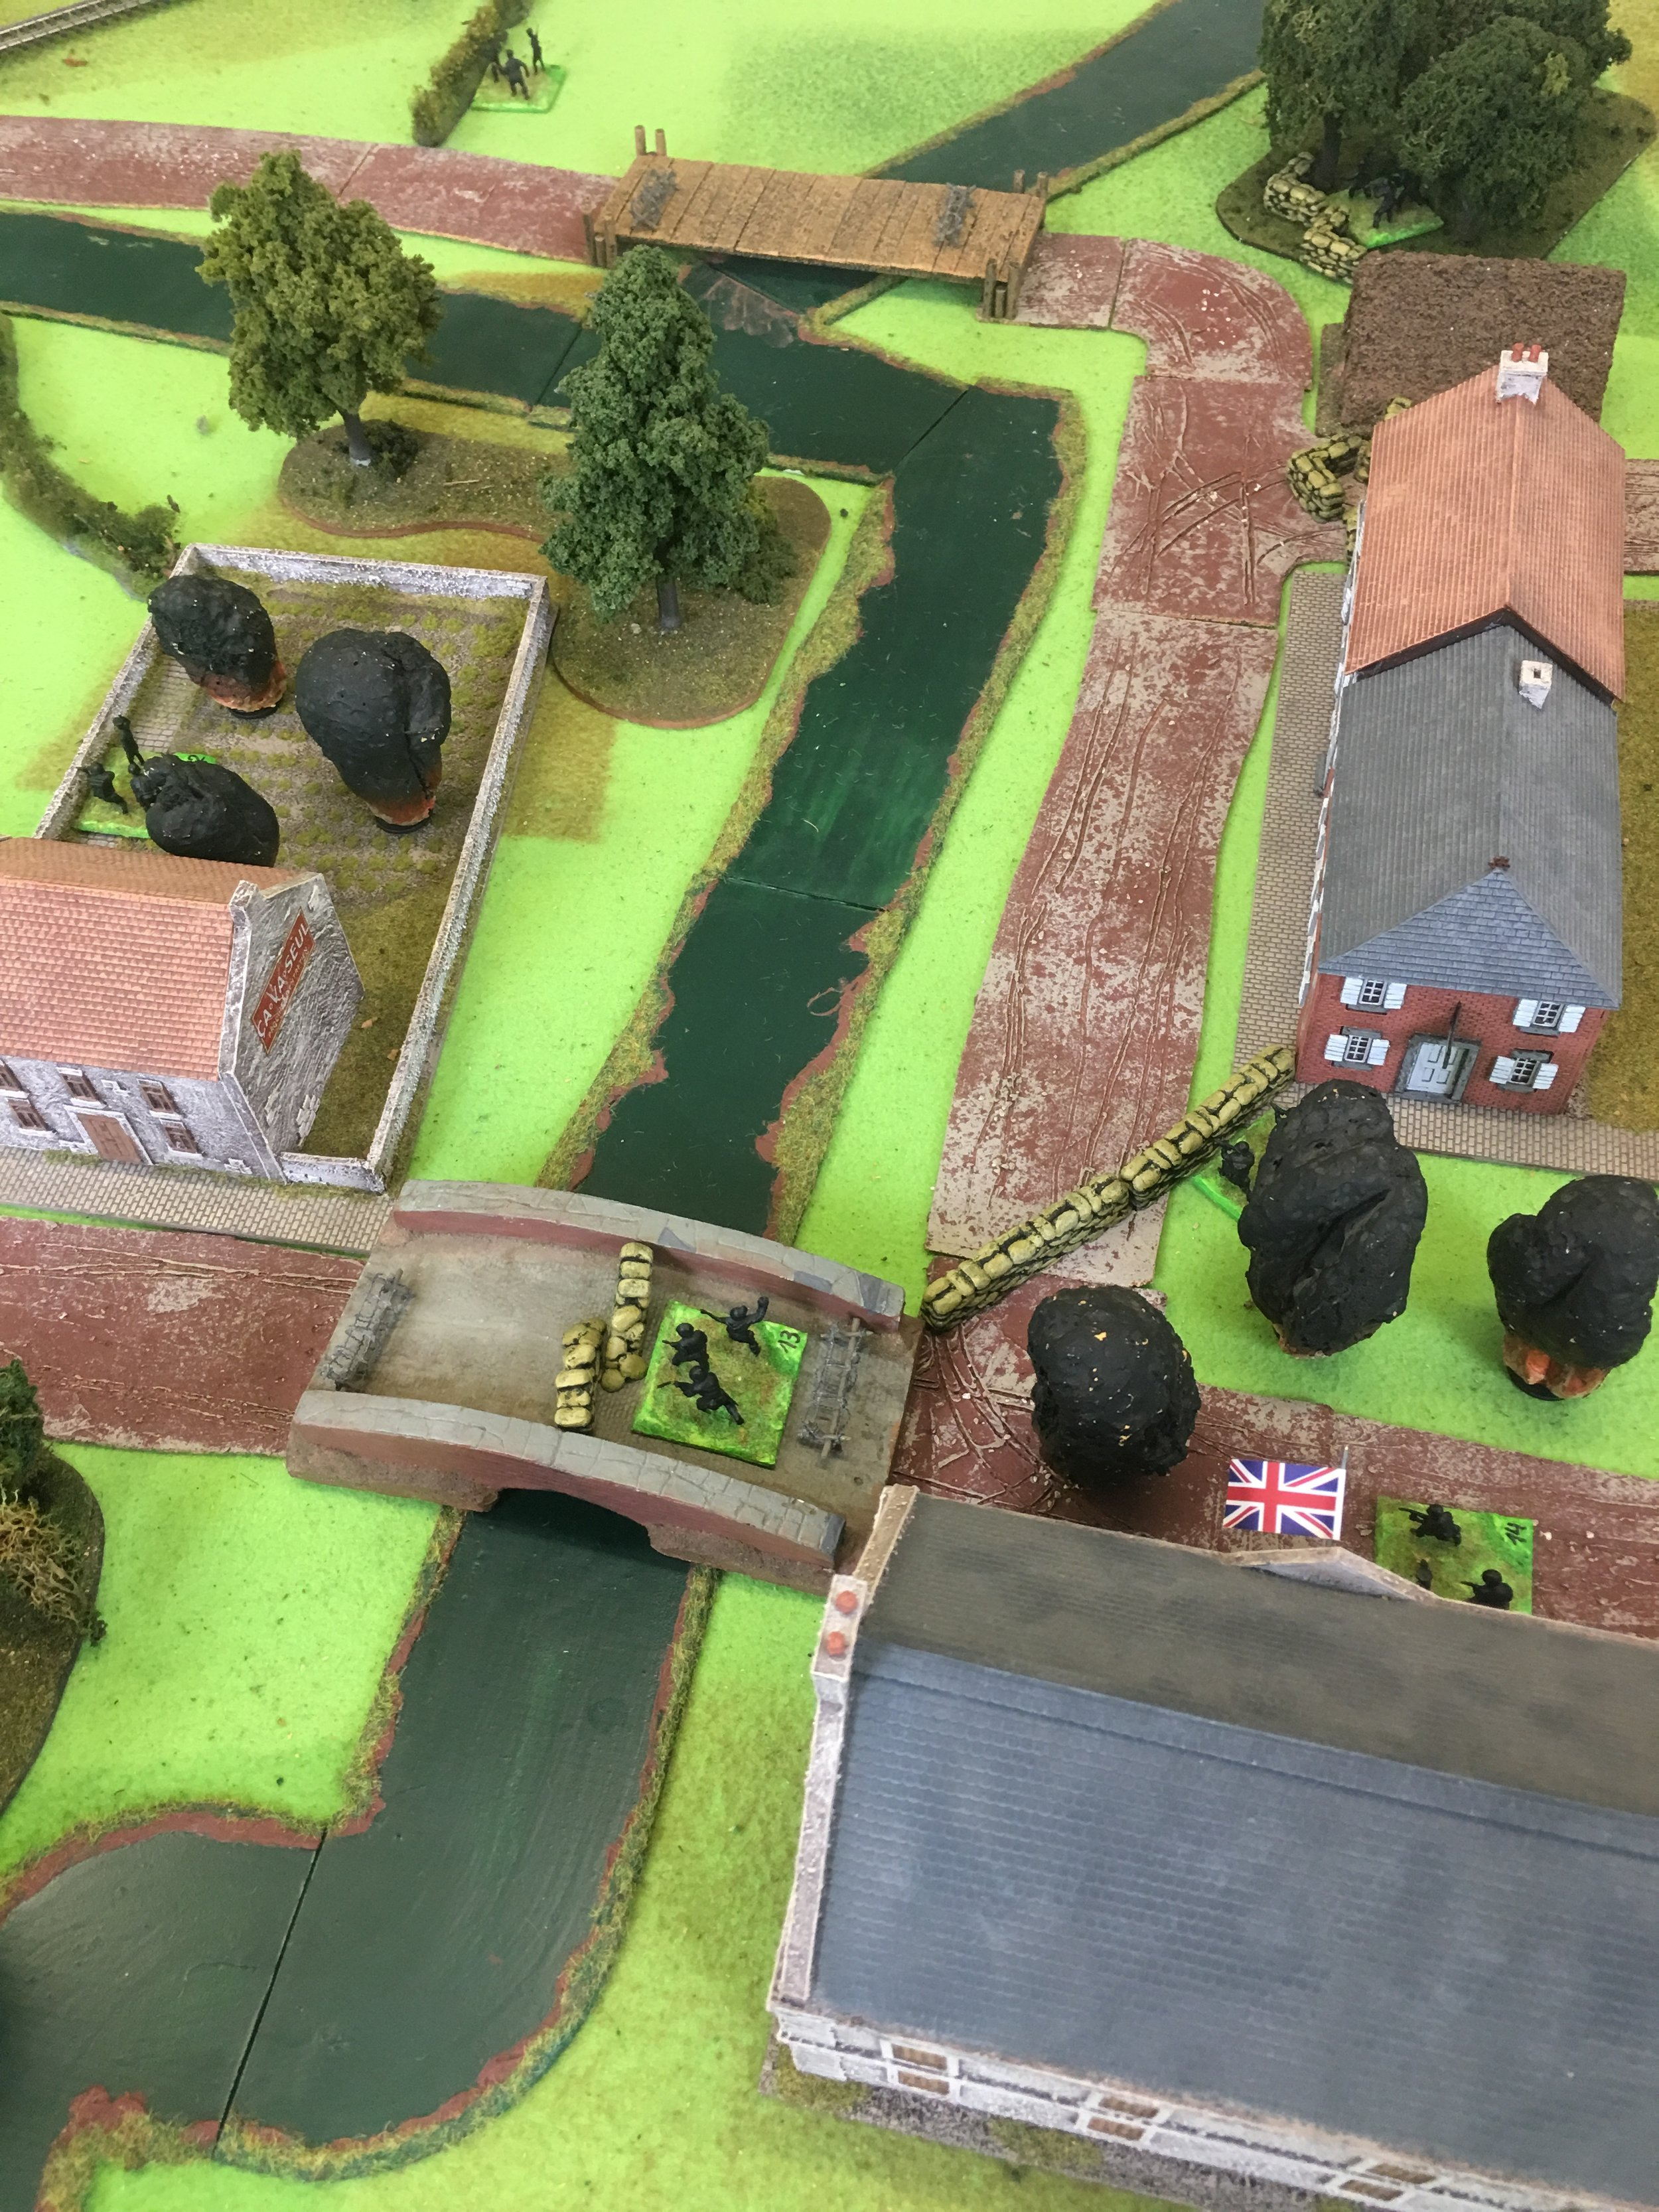 The scenario begins with one Stuka stonk against the British positions